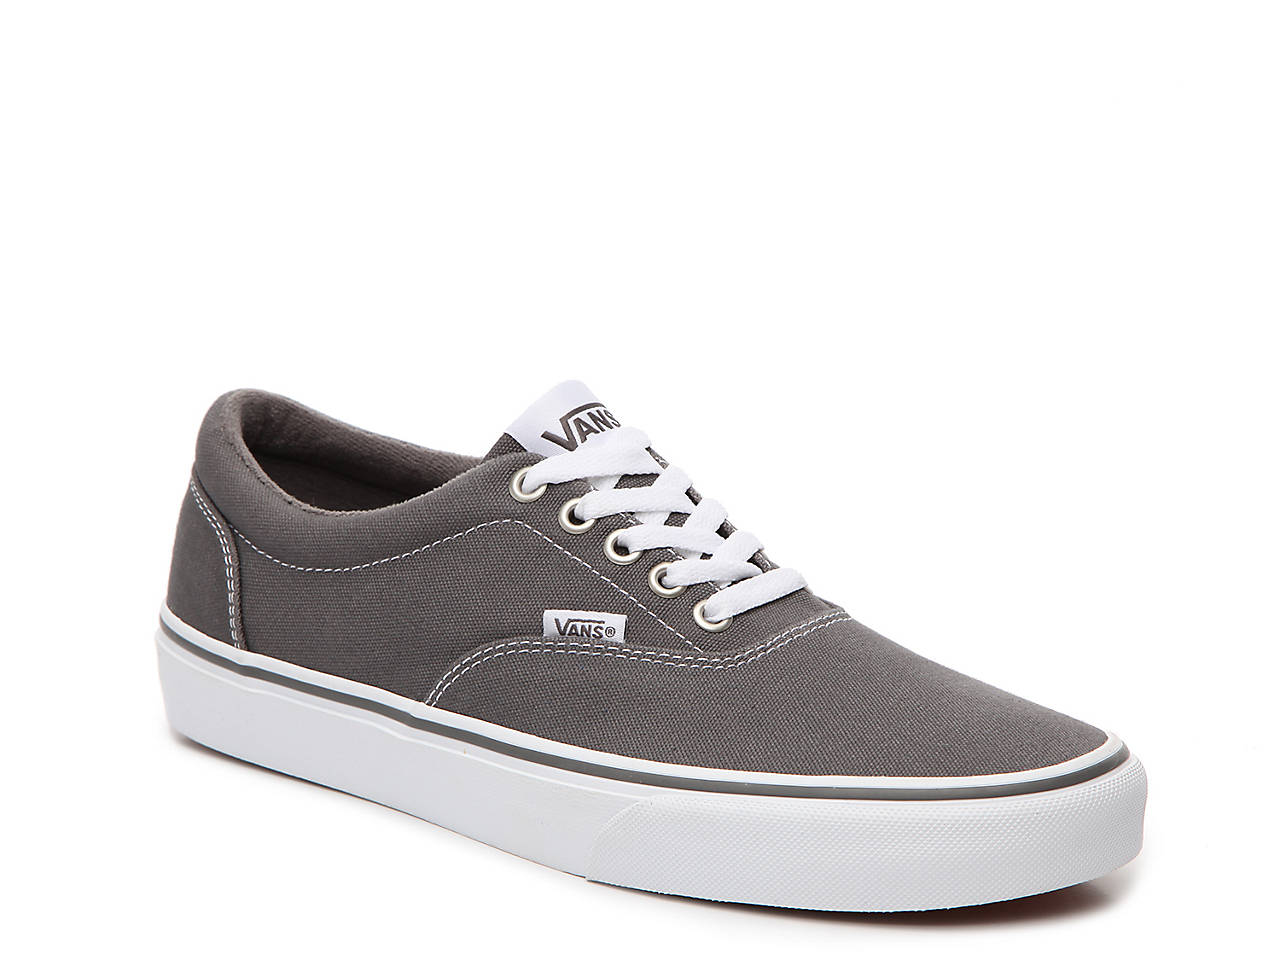 Vans Doheny Sneaker - Men's Men's Shoes | DSW